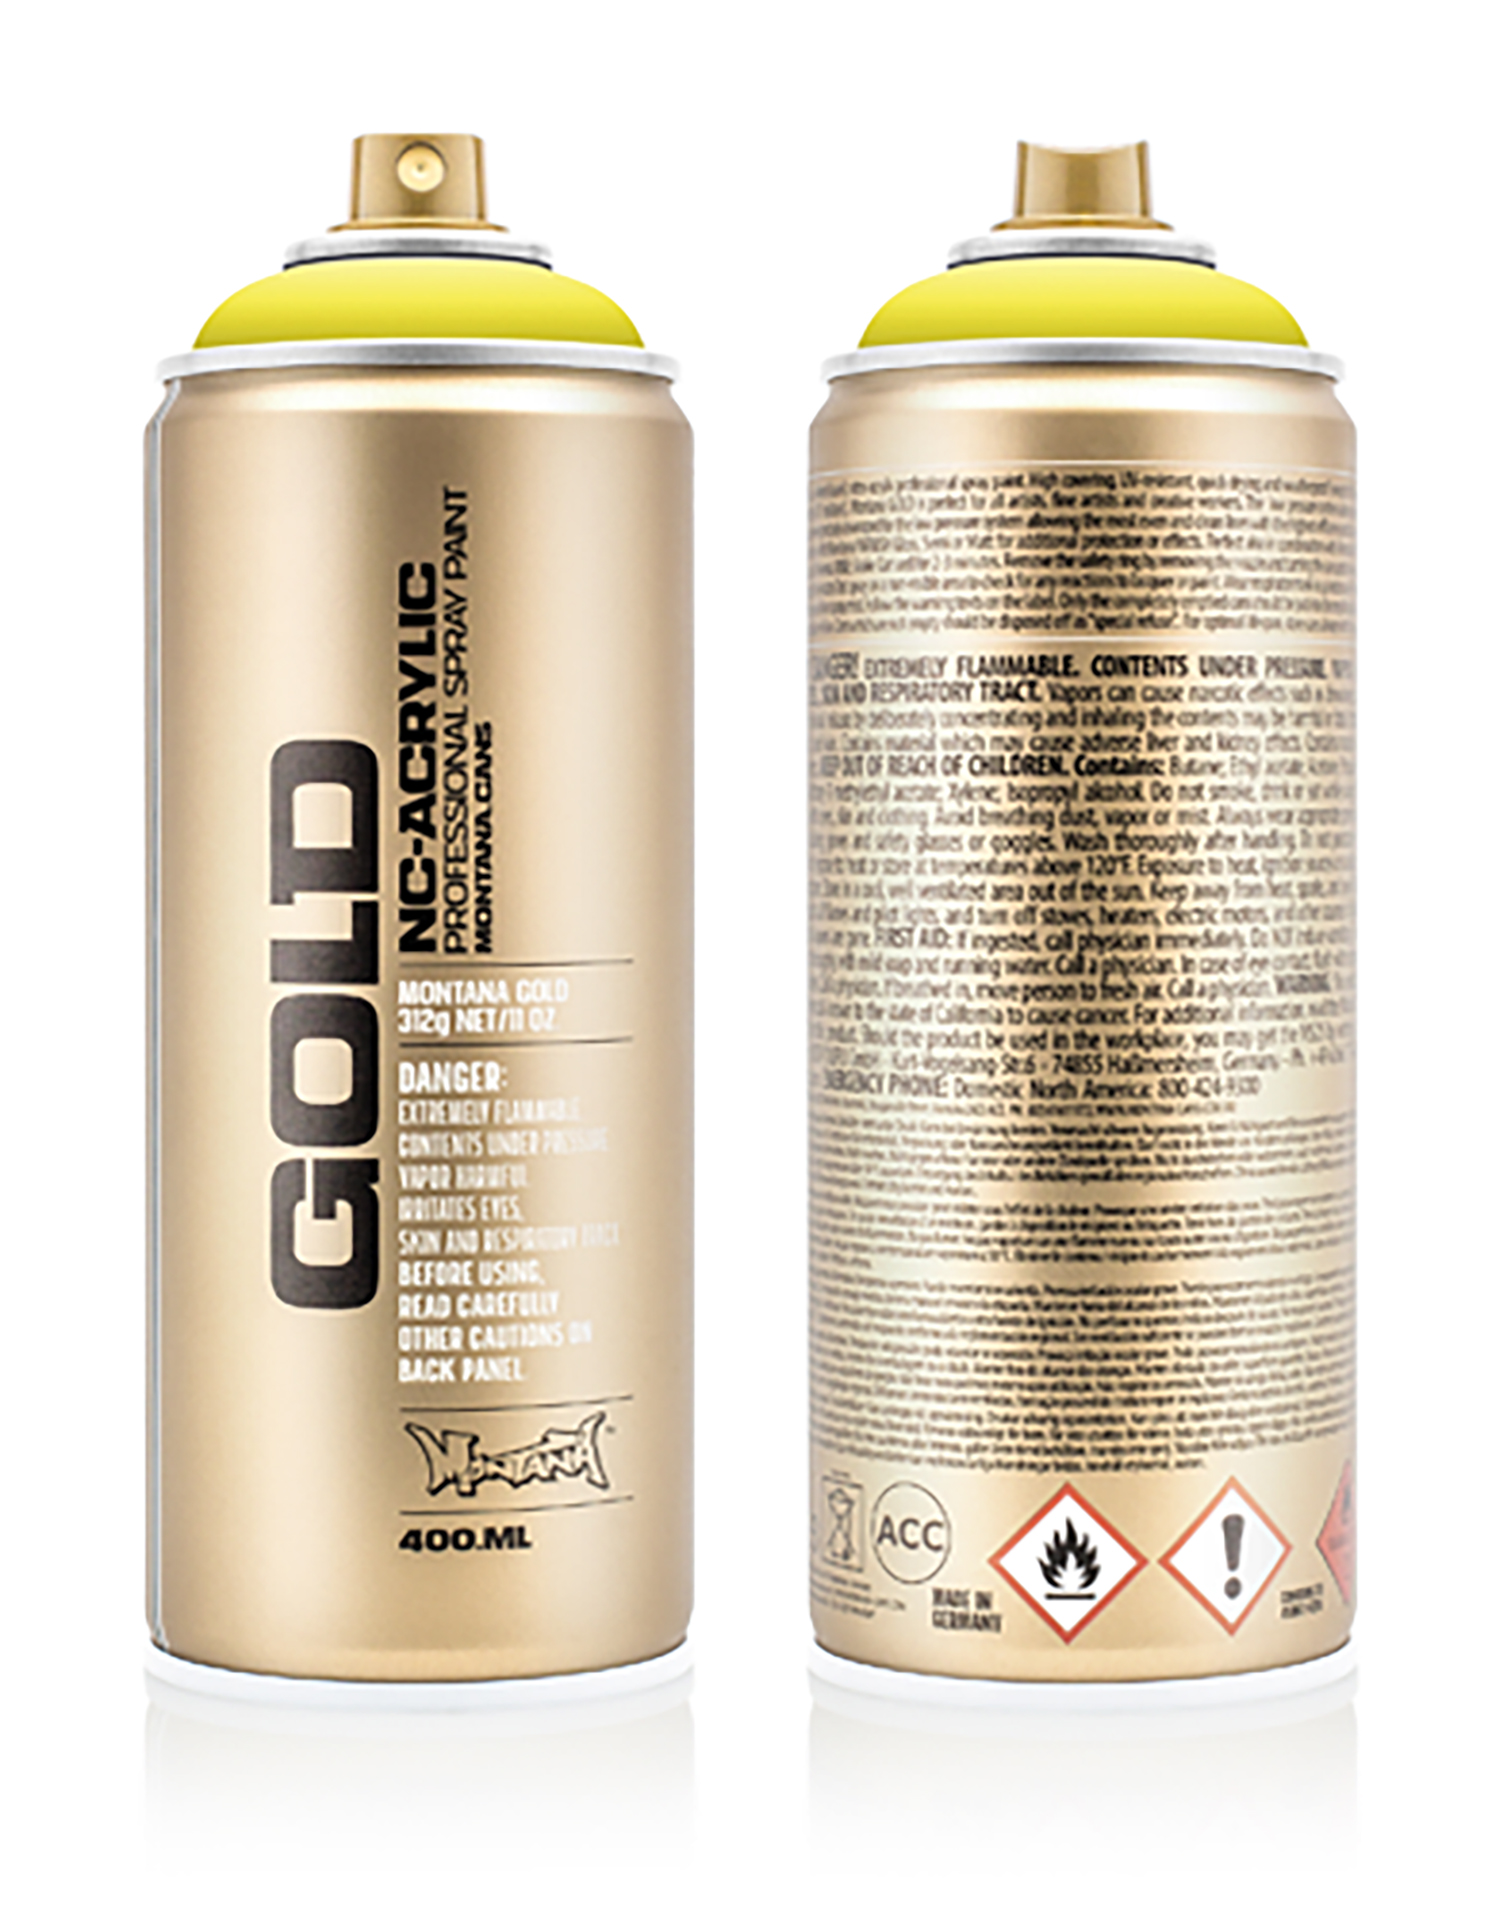 MONTANA-GOLD-SPRAY-400ML-G-1110